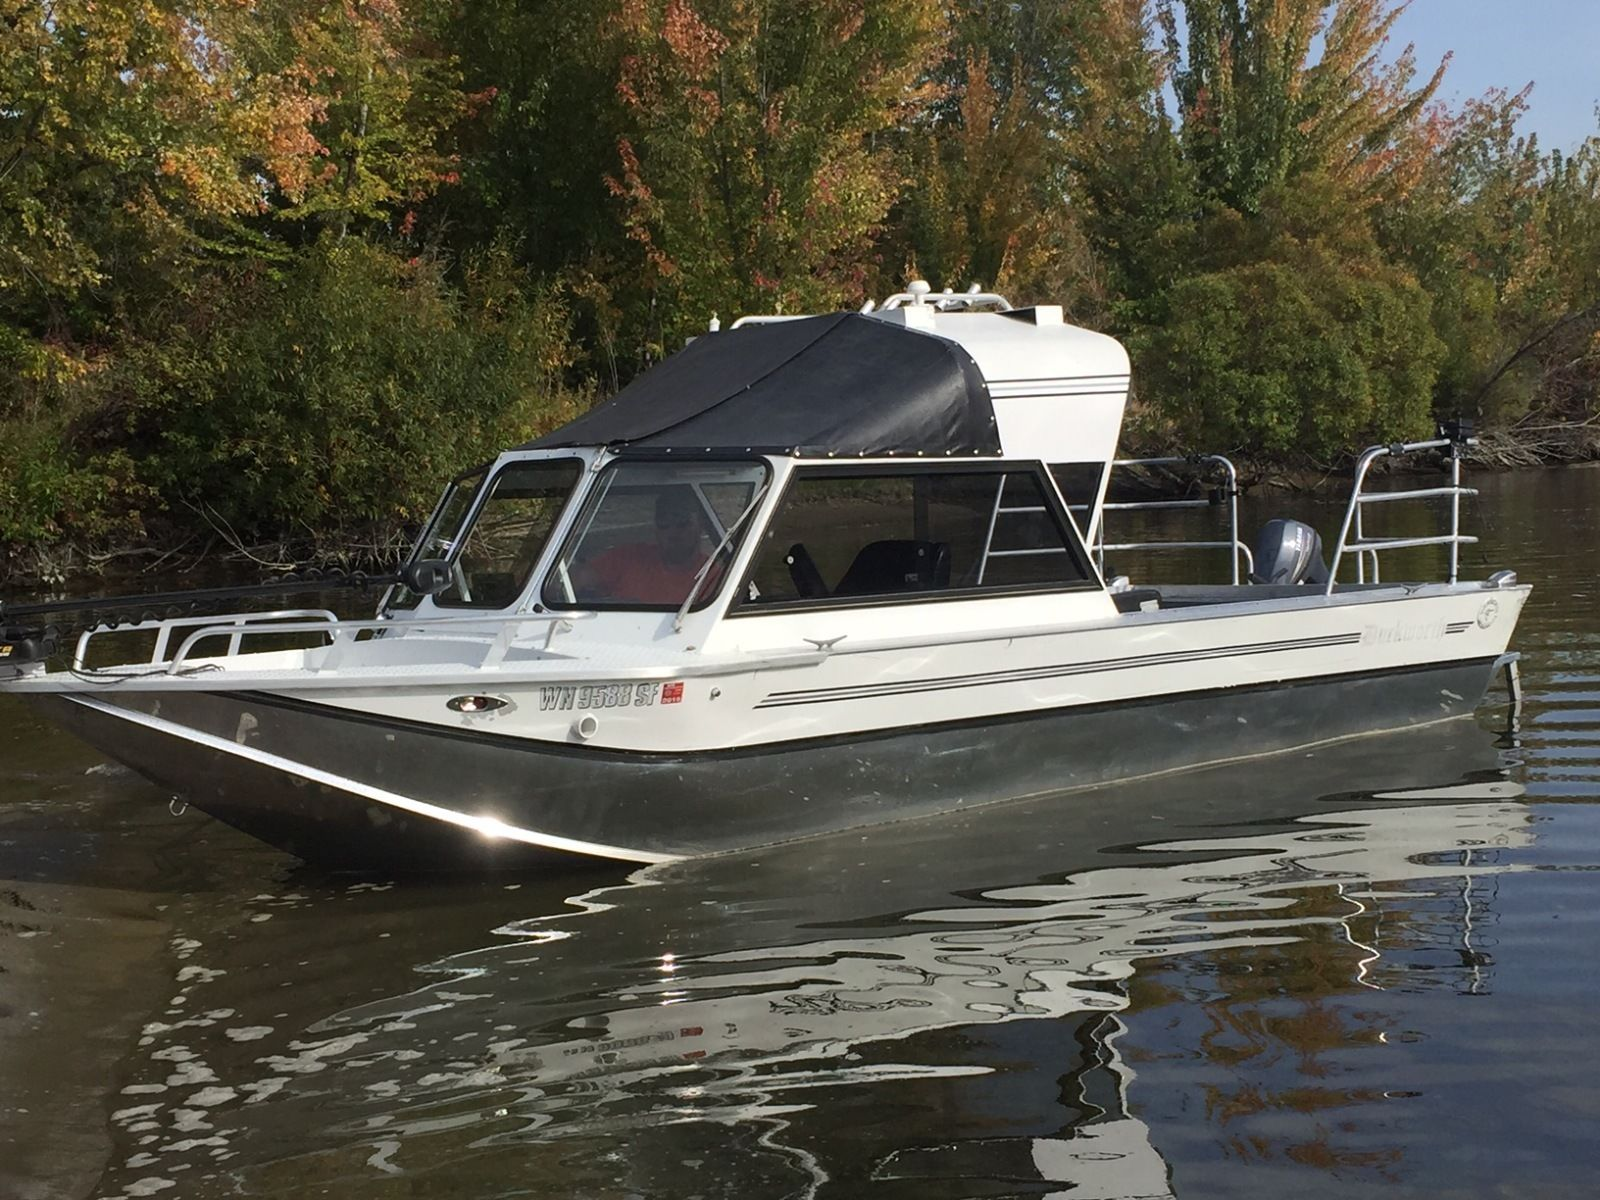 Duckworth magnum 1995 for sale for 36 000 boats from for Jet fishing boats for sale